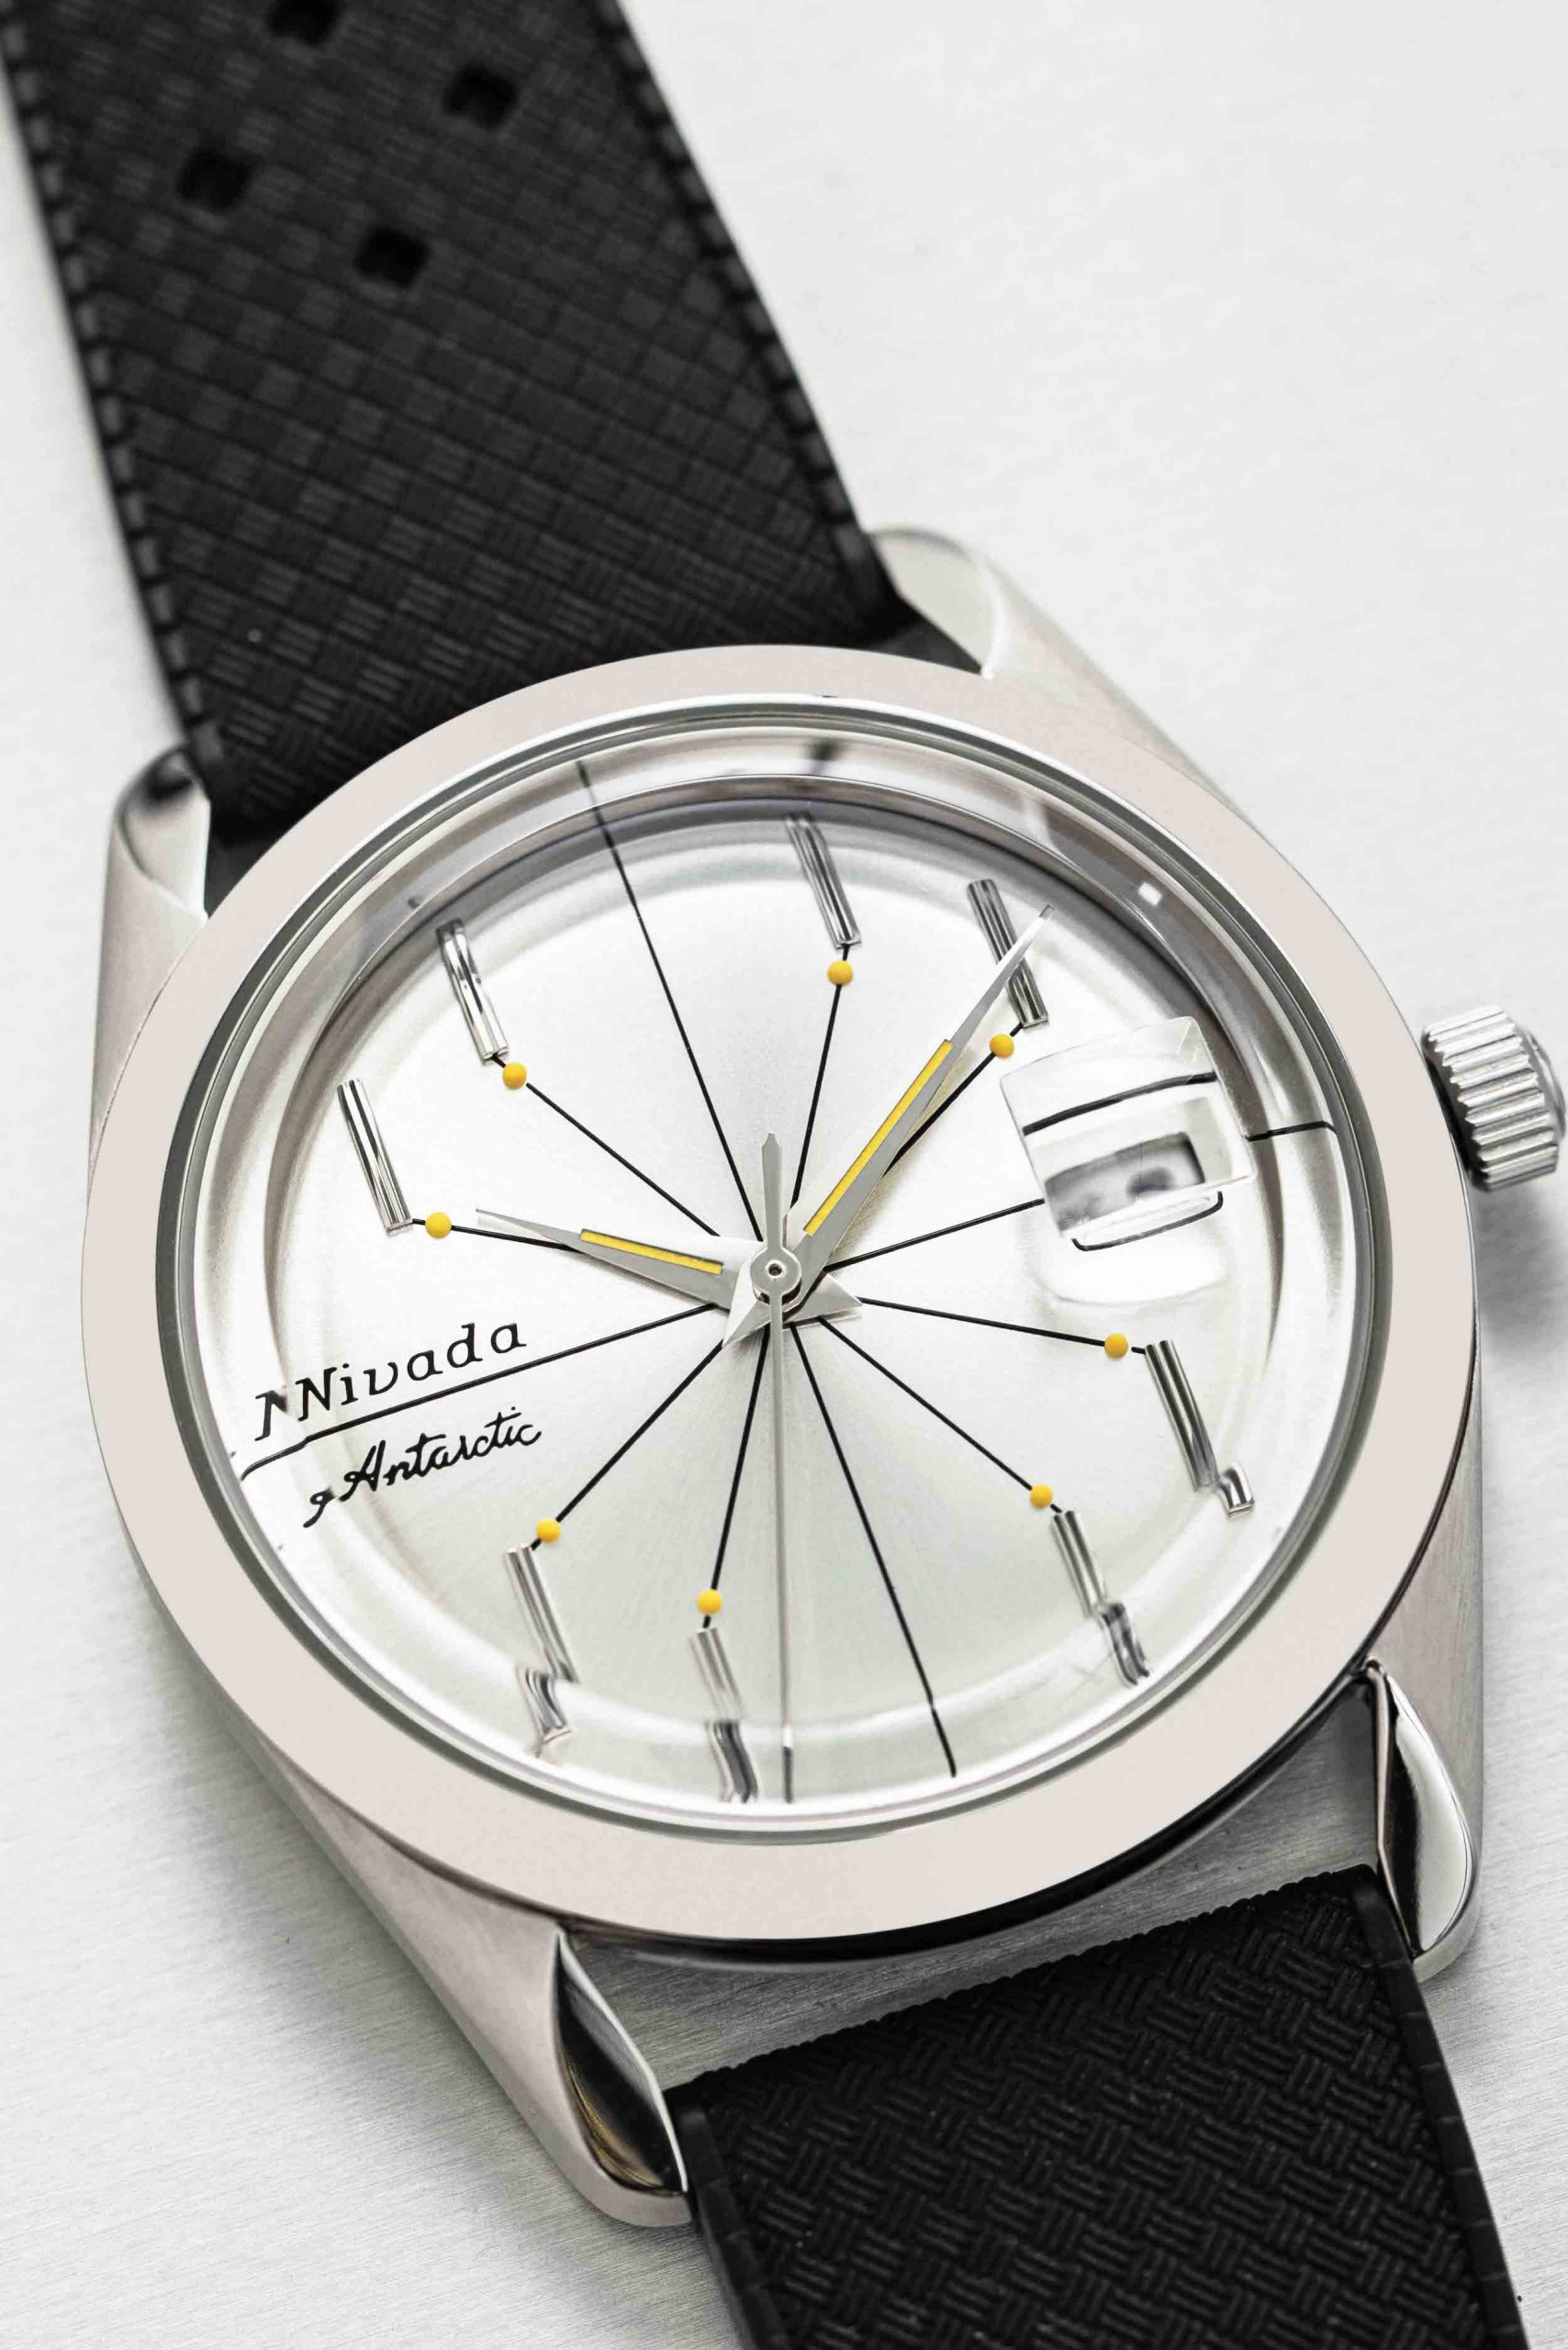 Nivada Grenchen Antarctic Spider on tropical strap